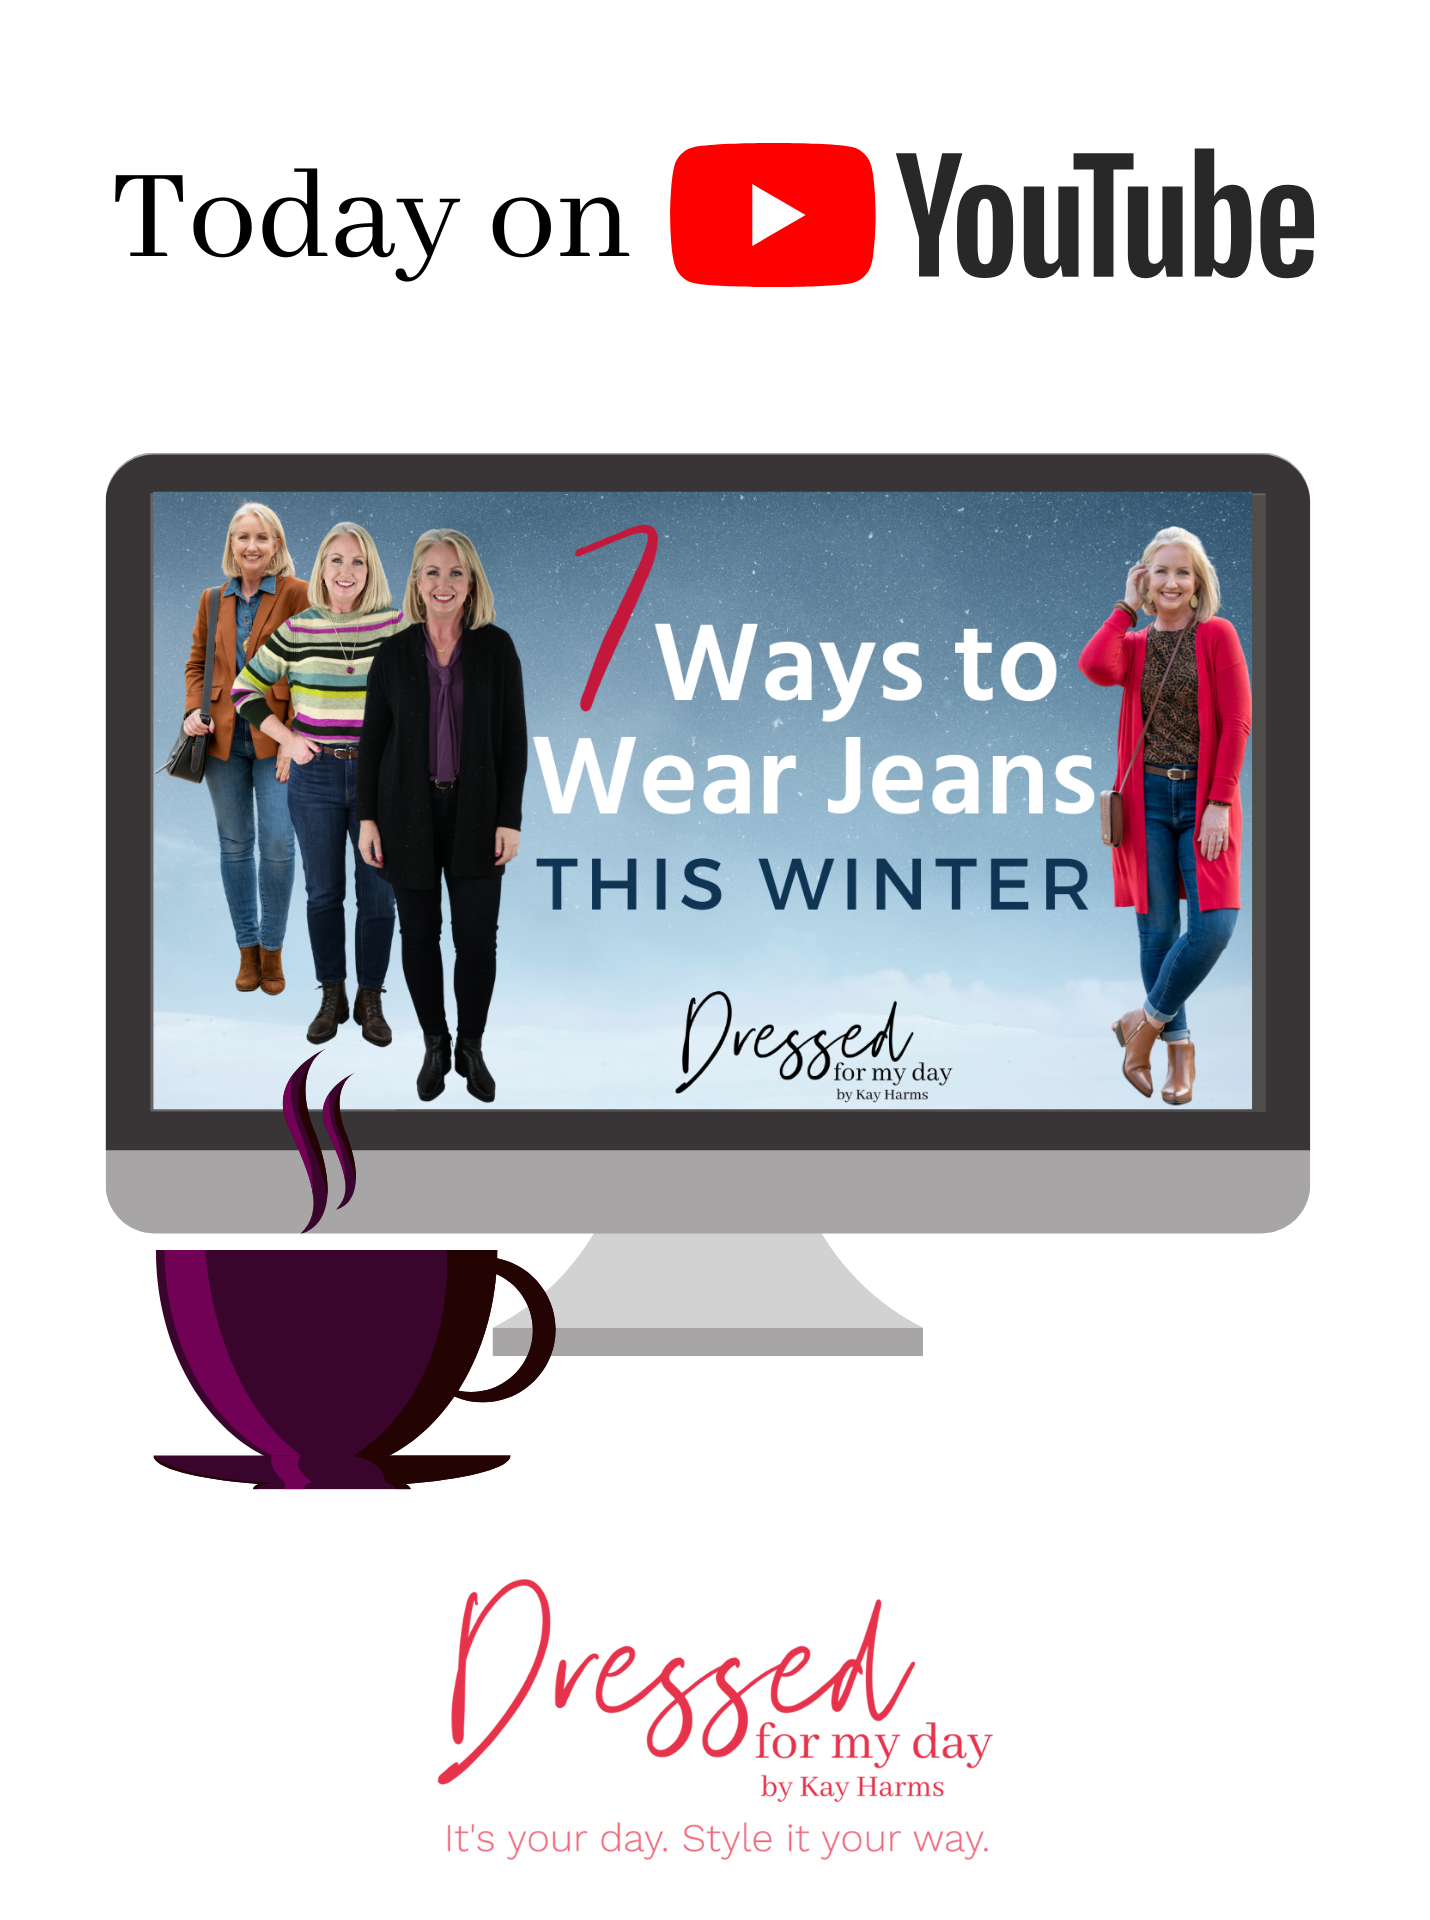 7 Ways to Wear Jeans this Winter (1)